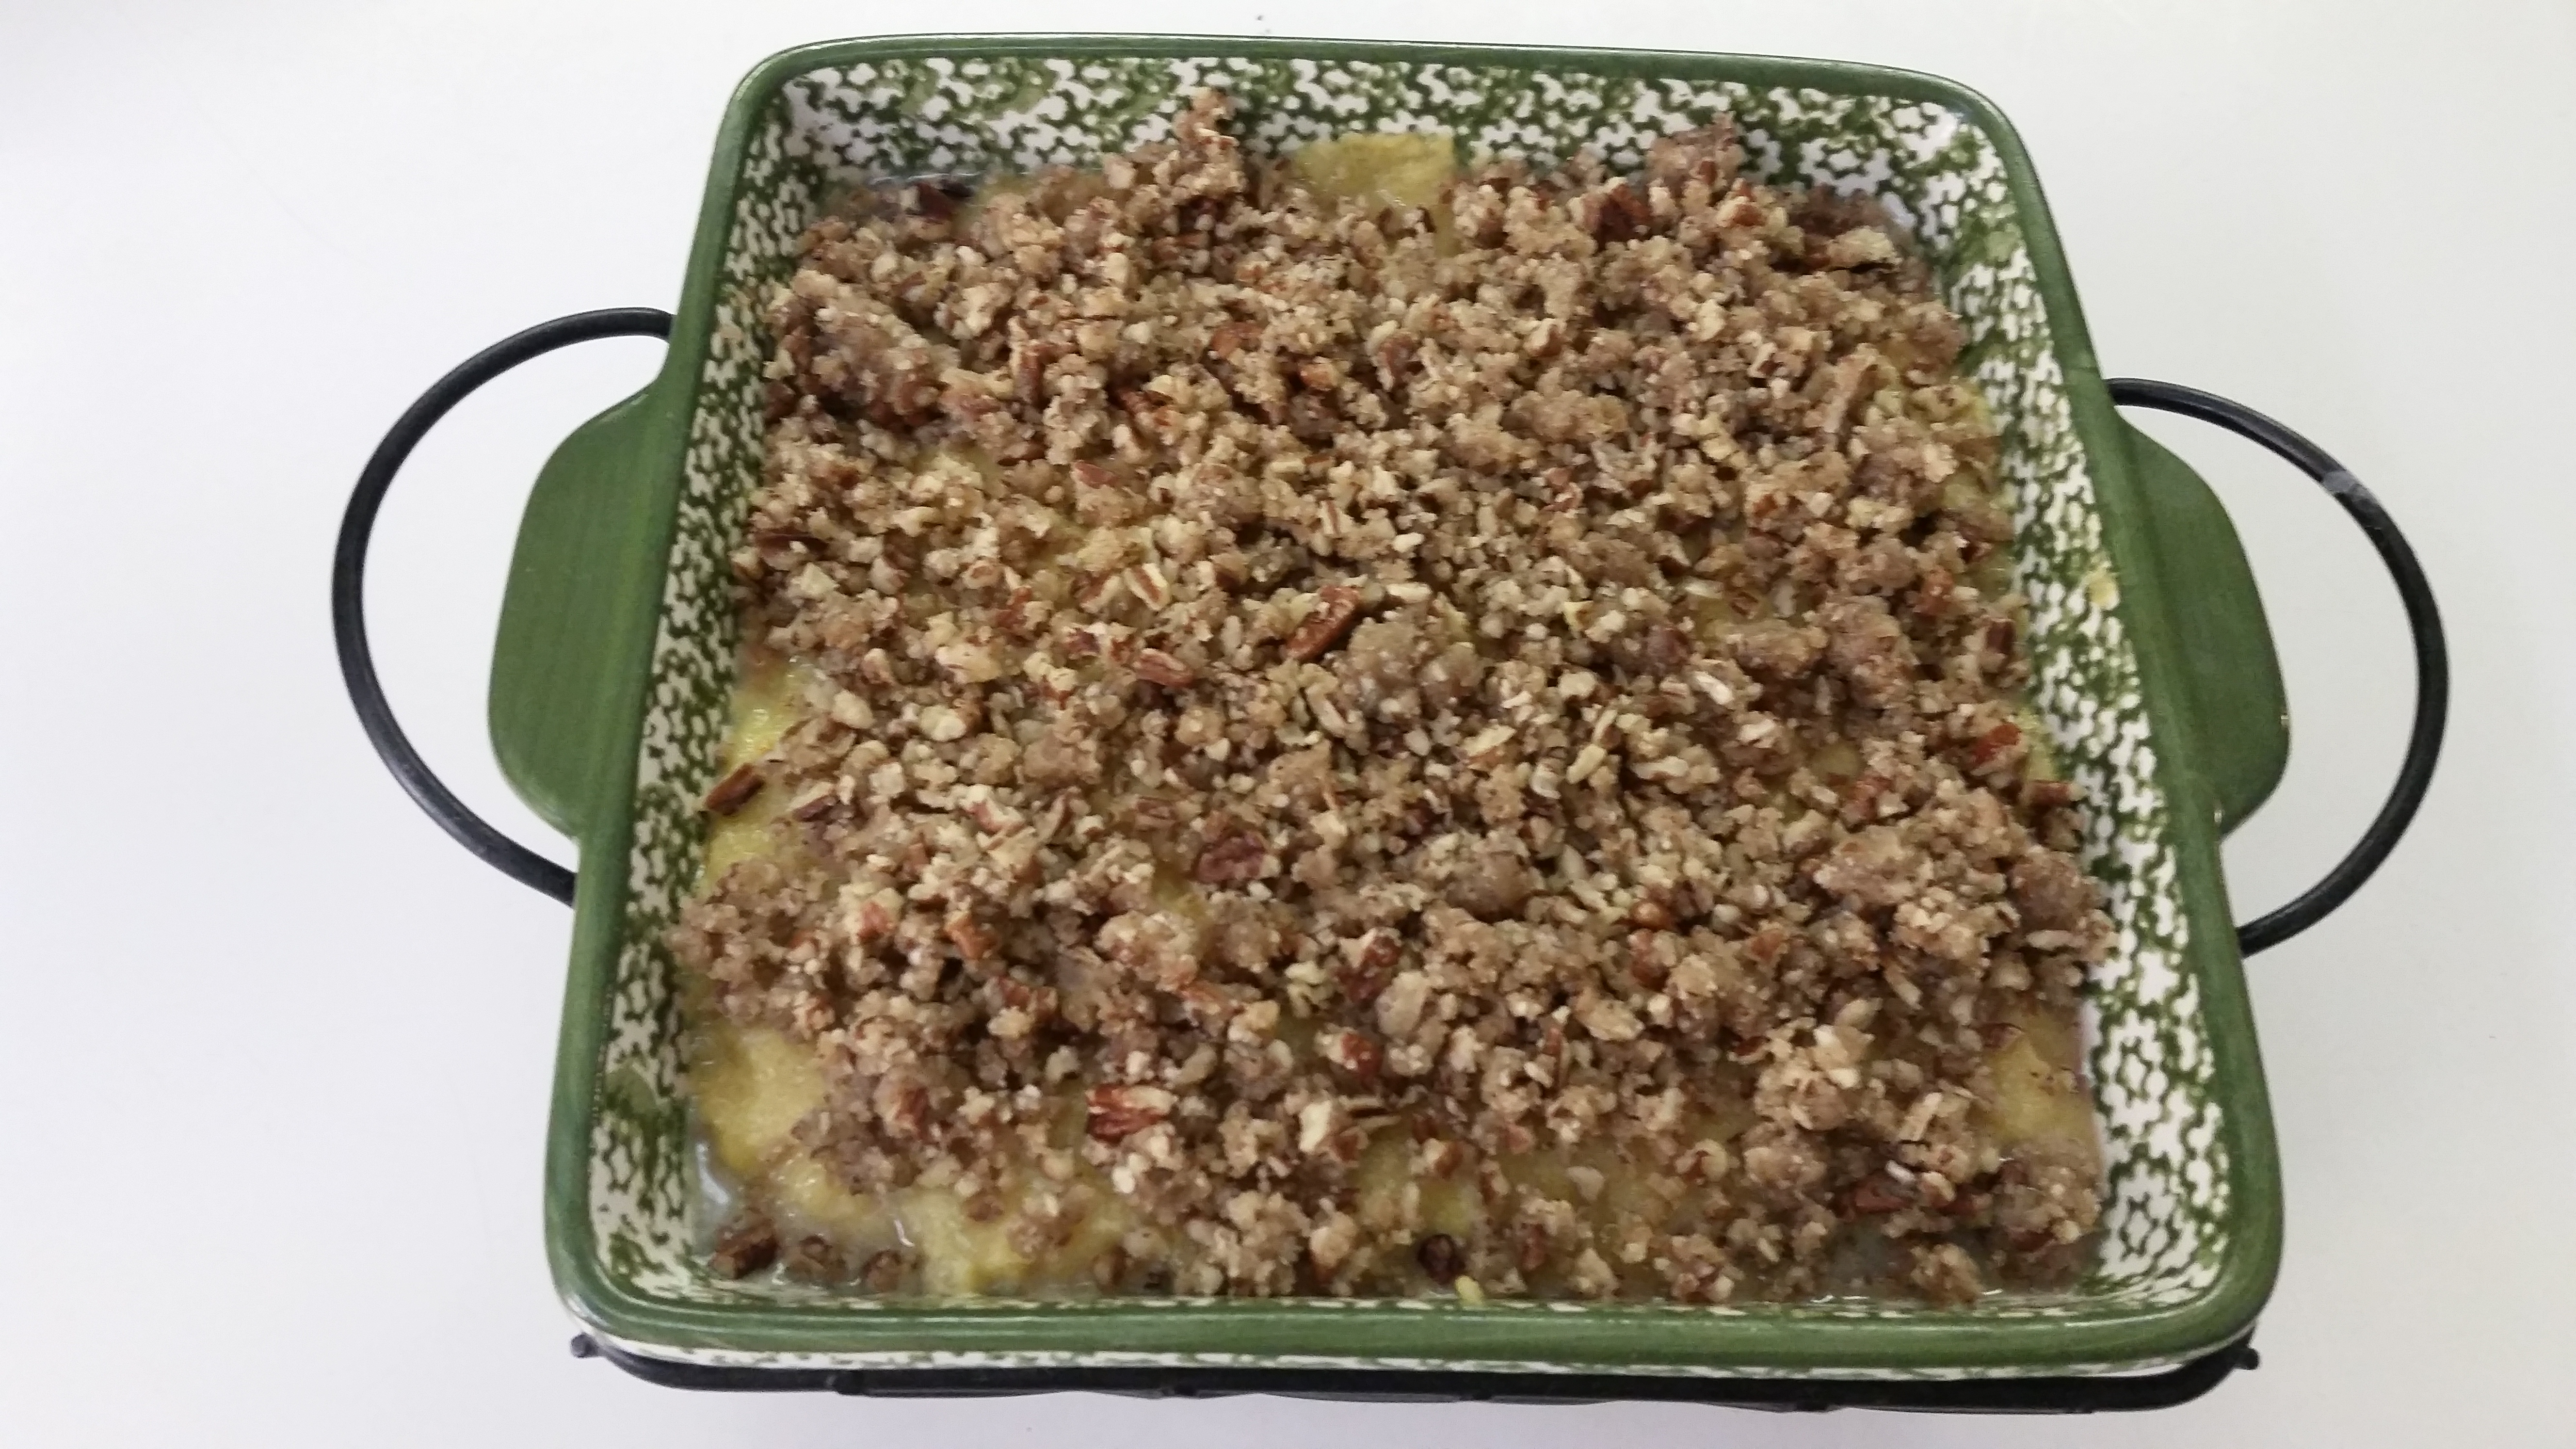 Squash Casserole with Crunchy Pecan Topping James